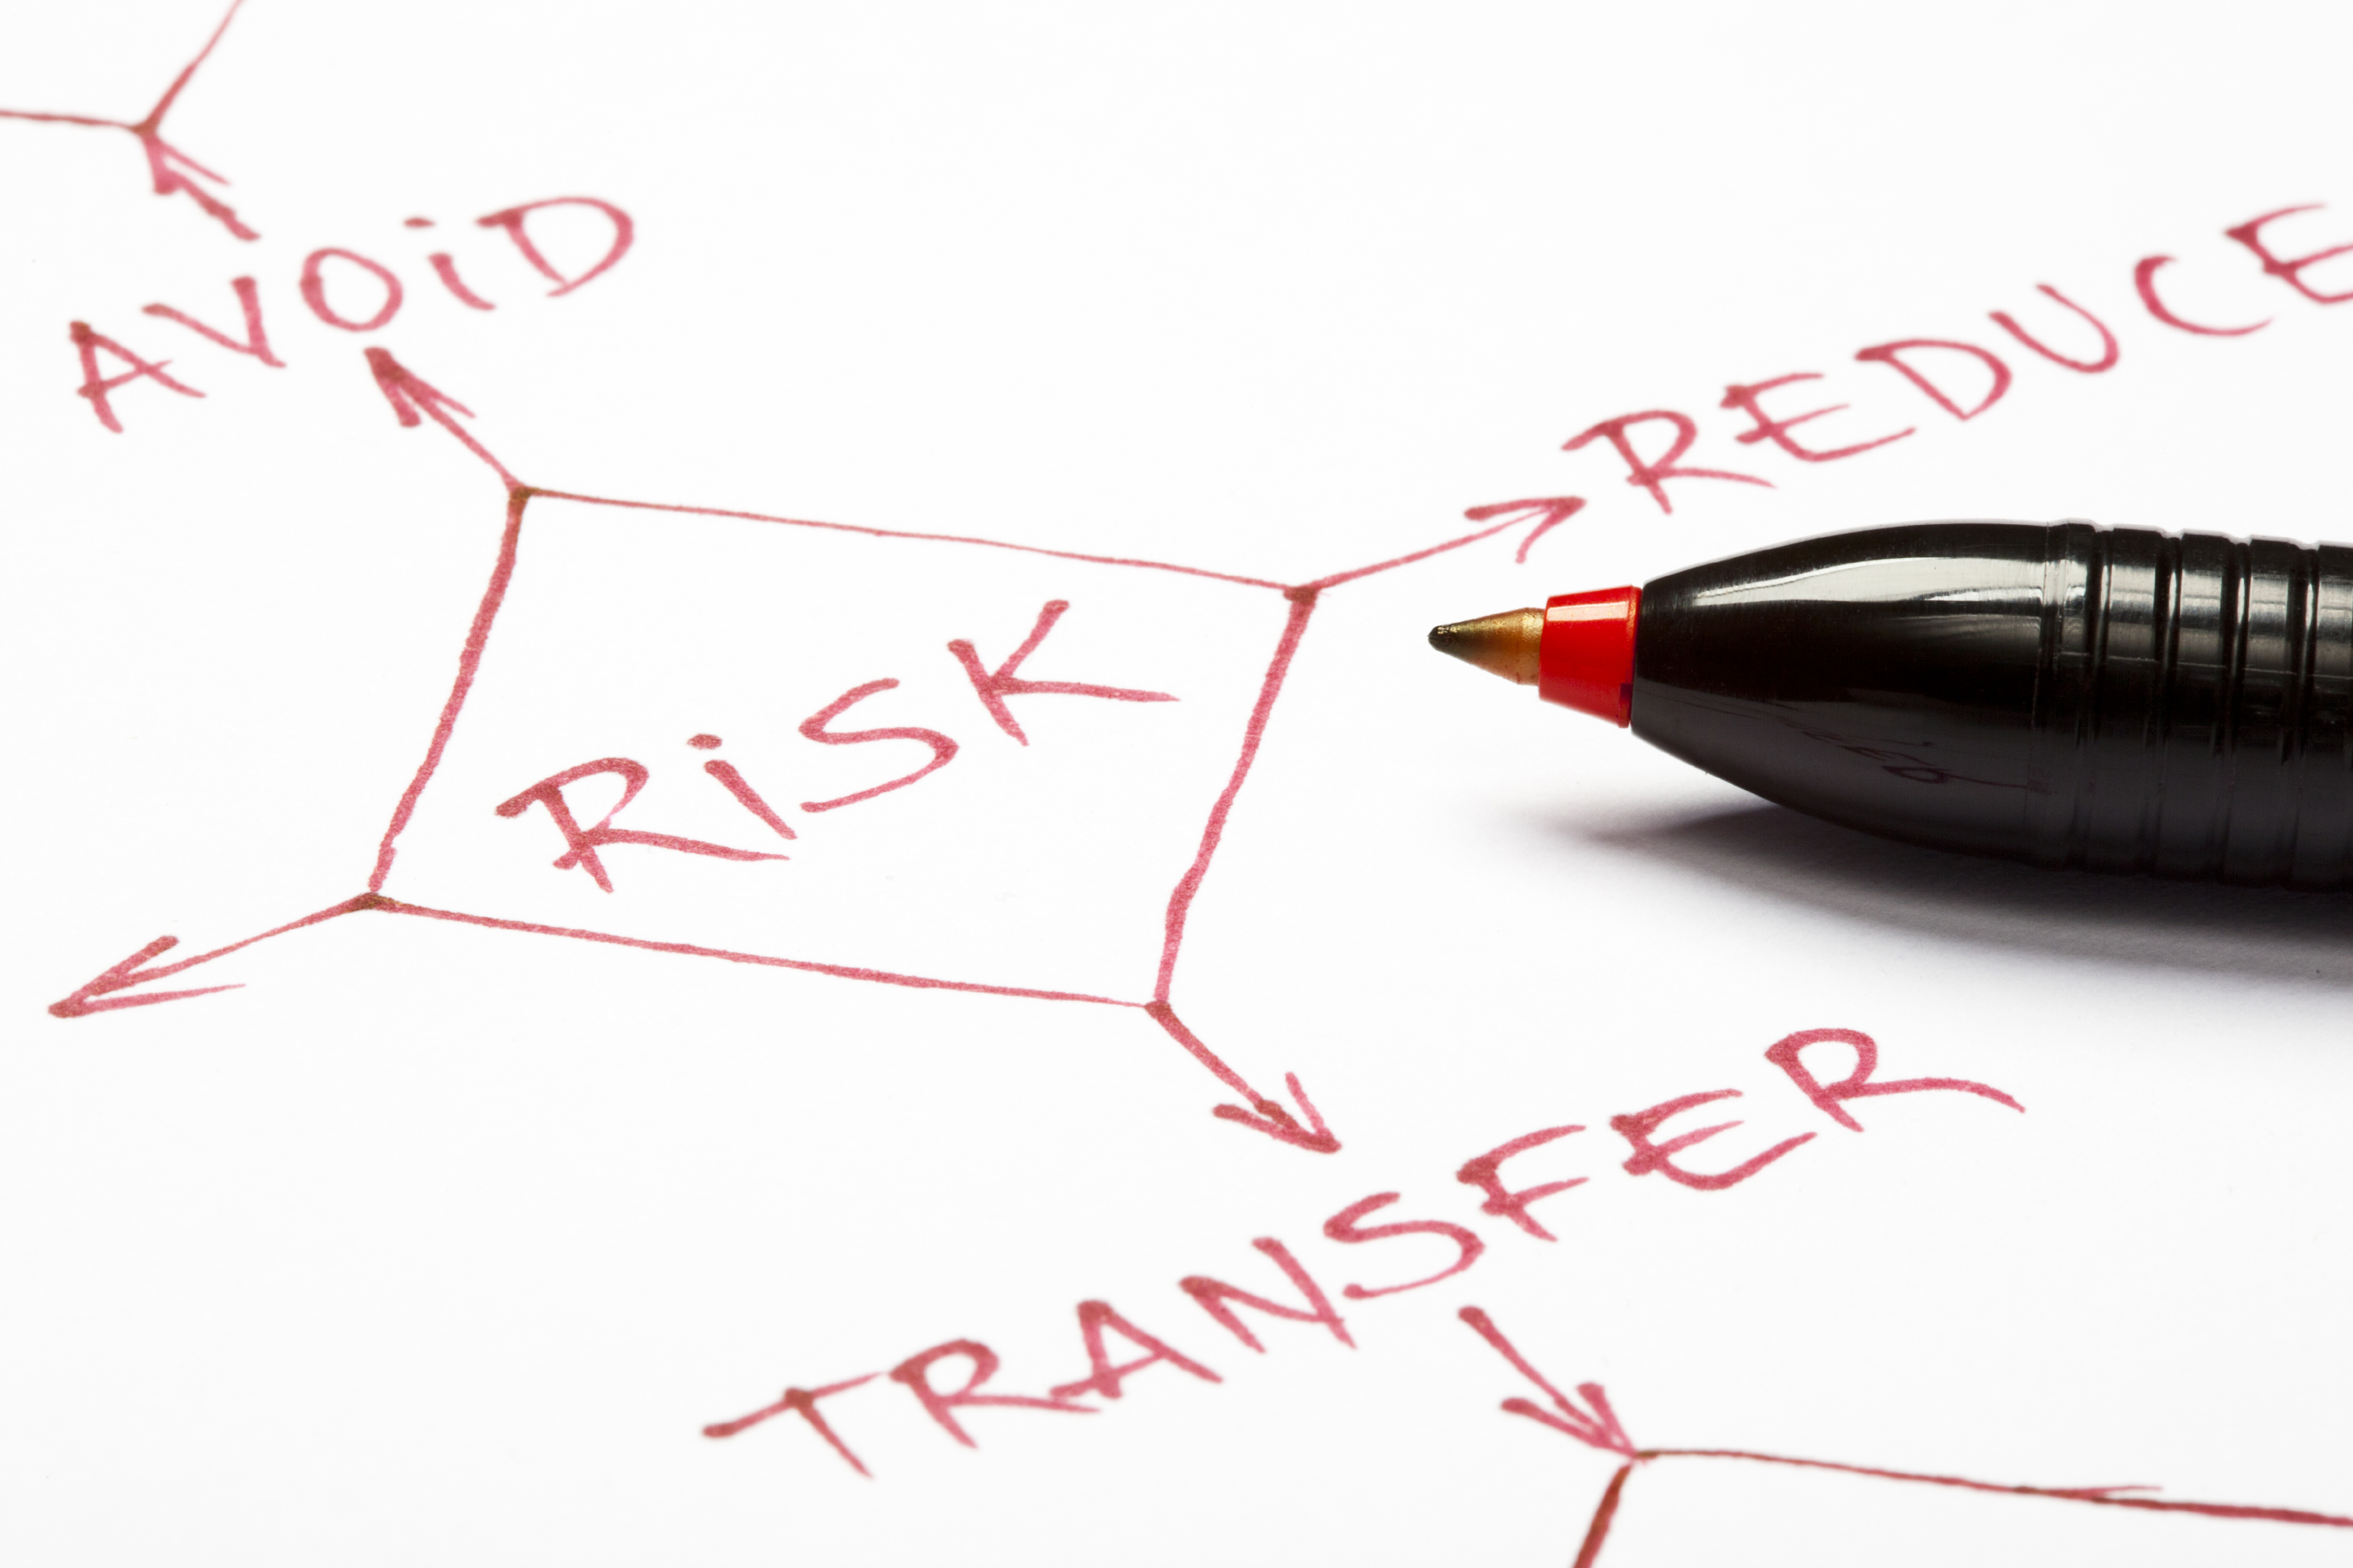 Risk Management Strategies To Reduce Company Turnover